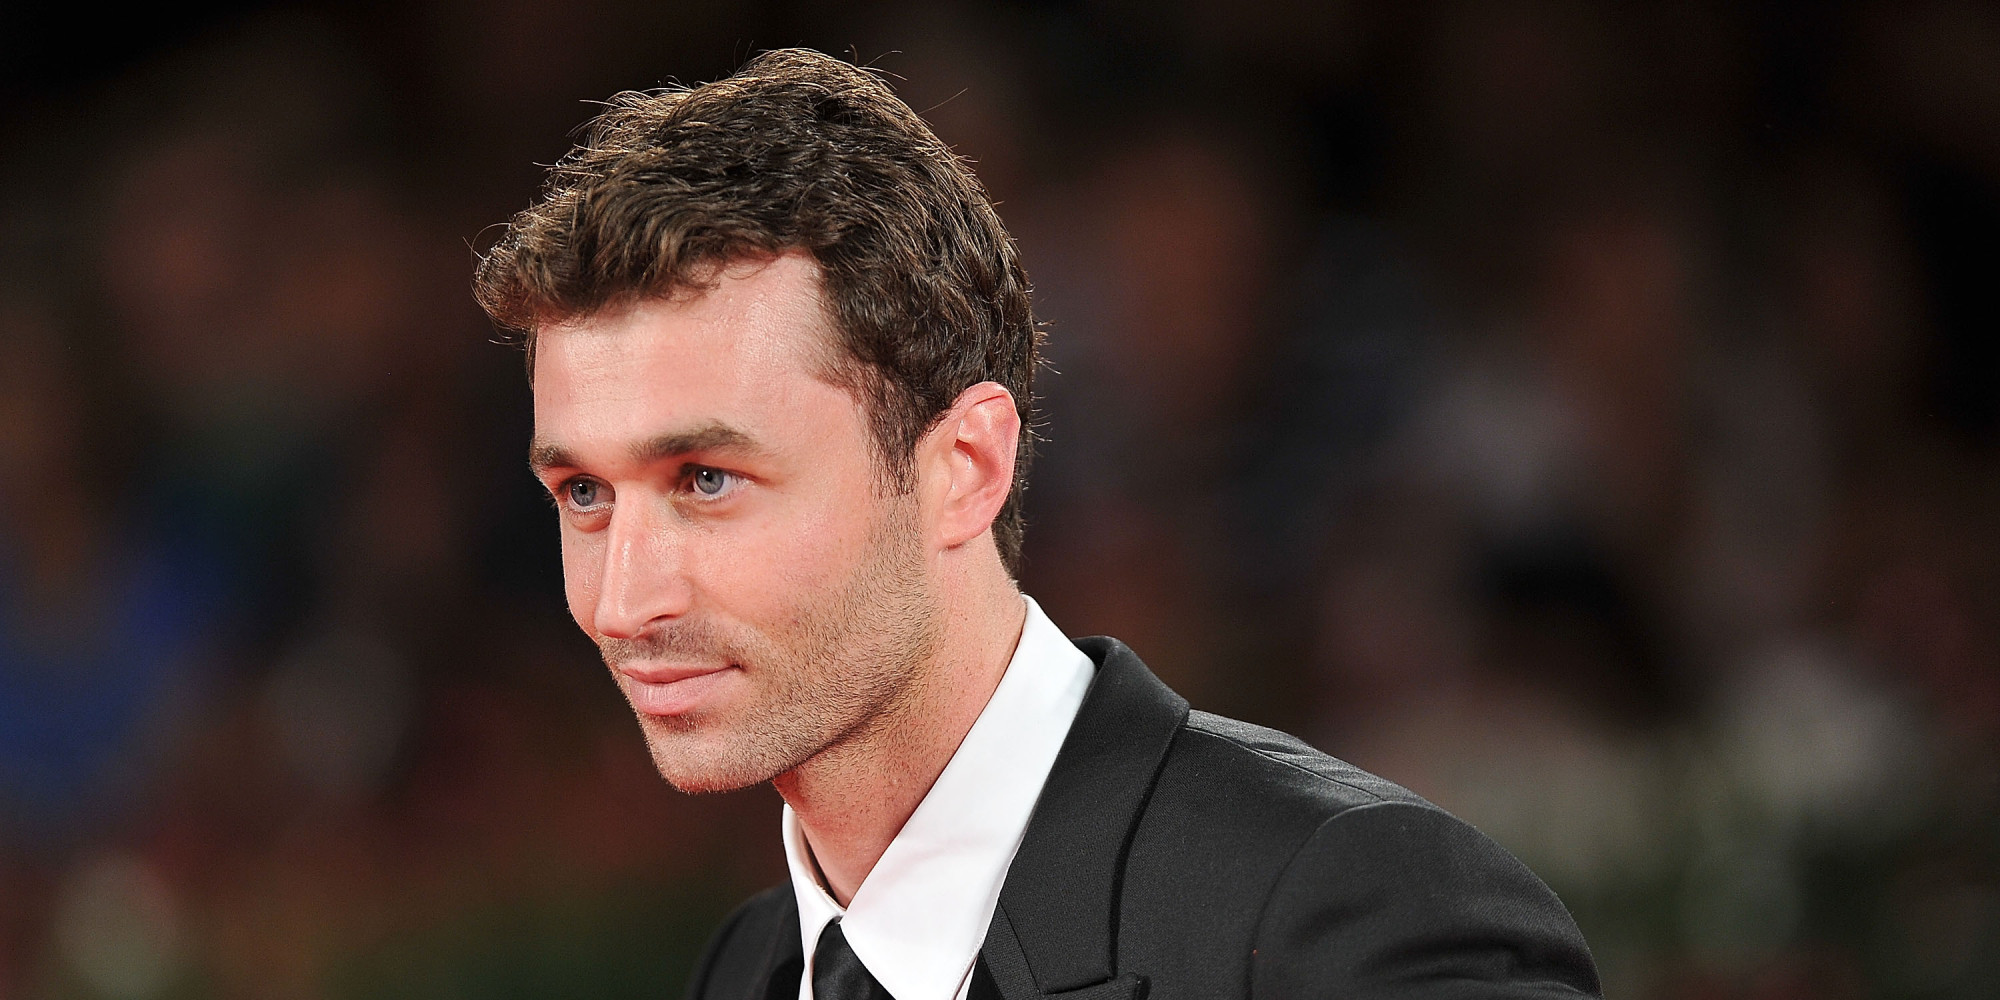 james deen instagram